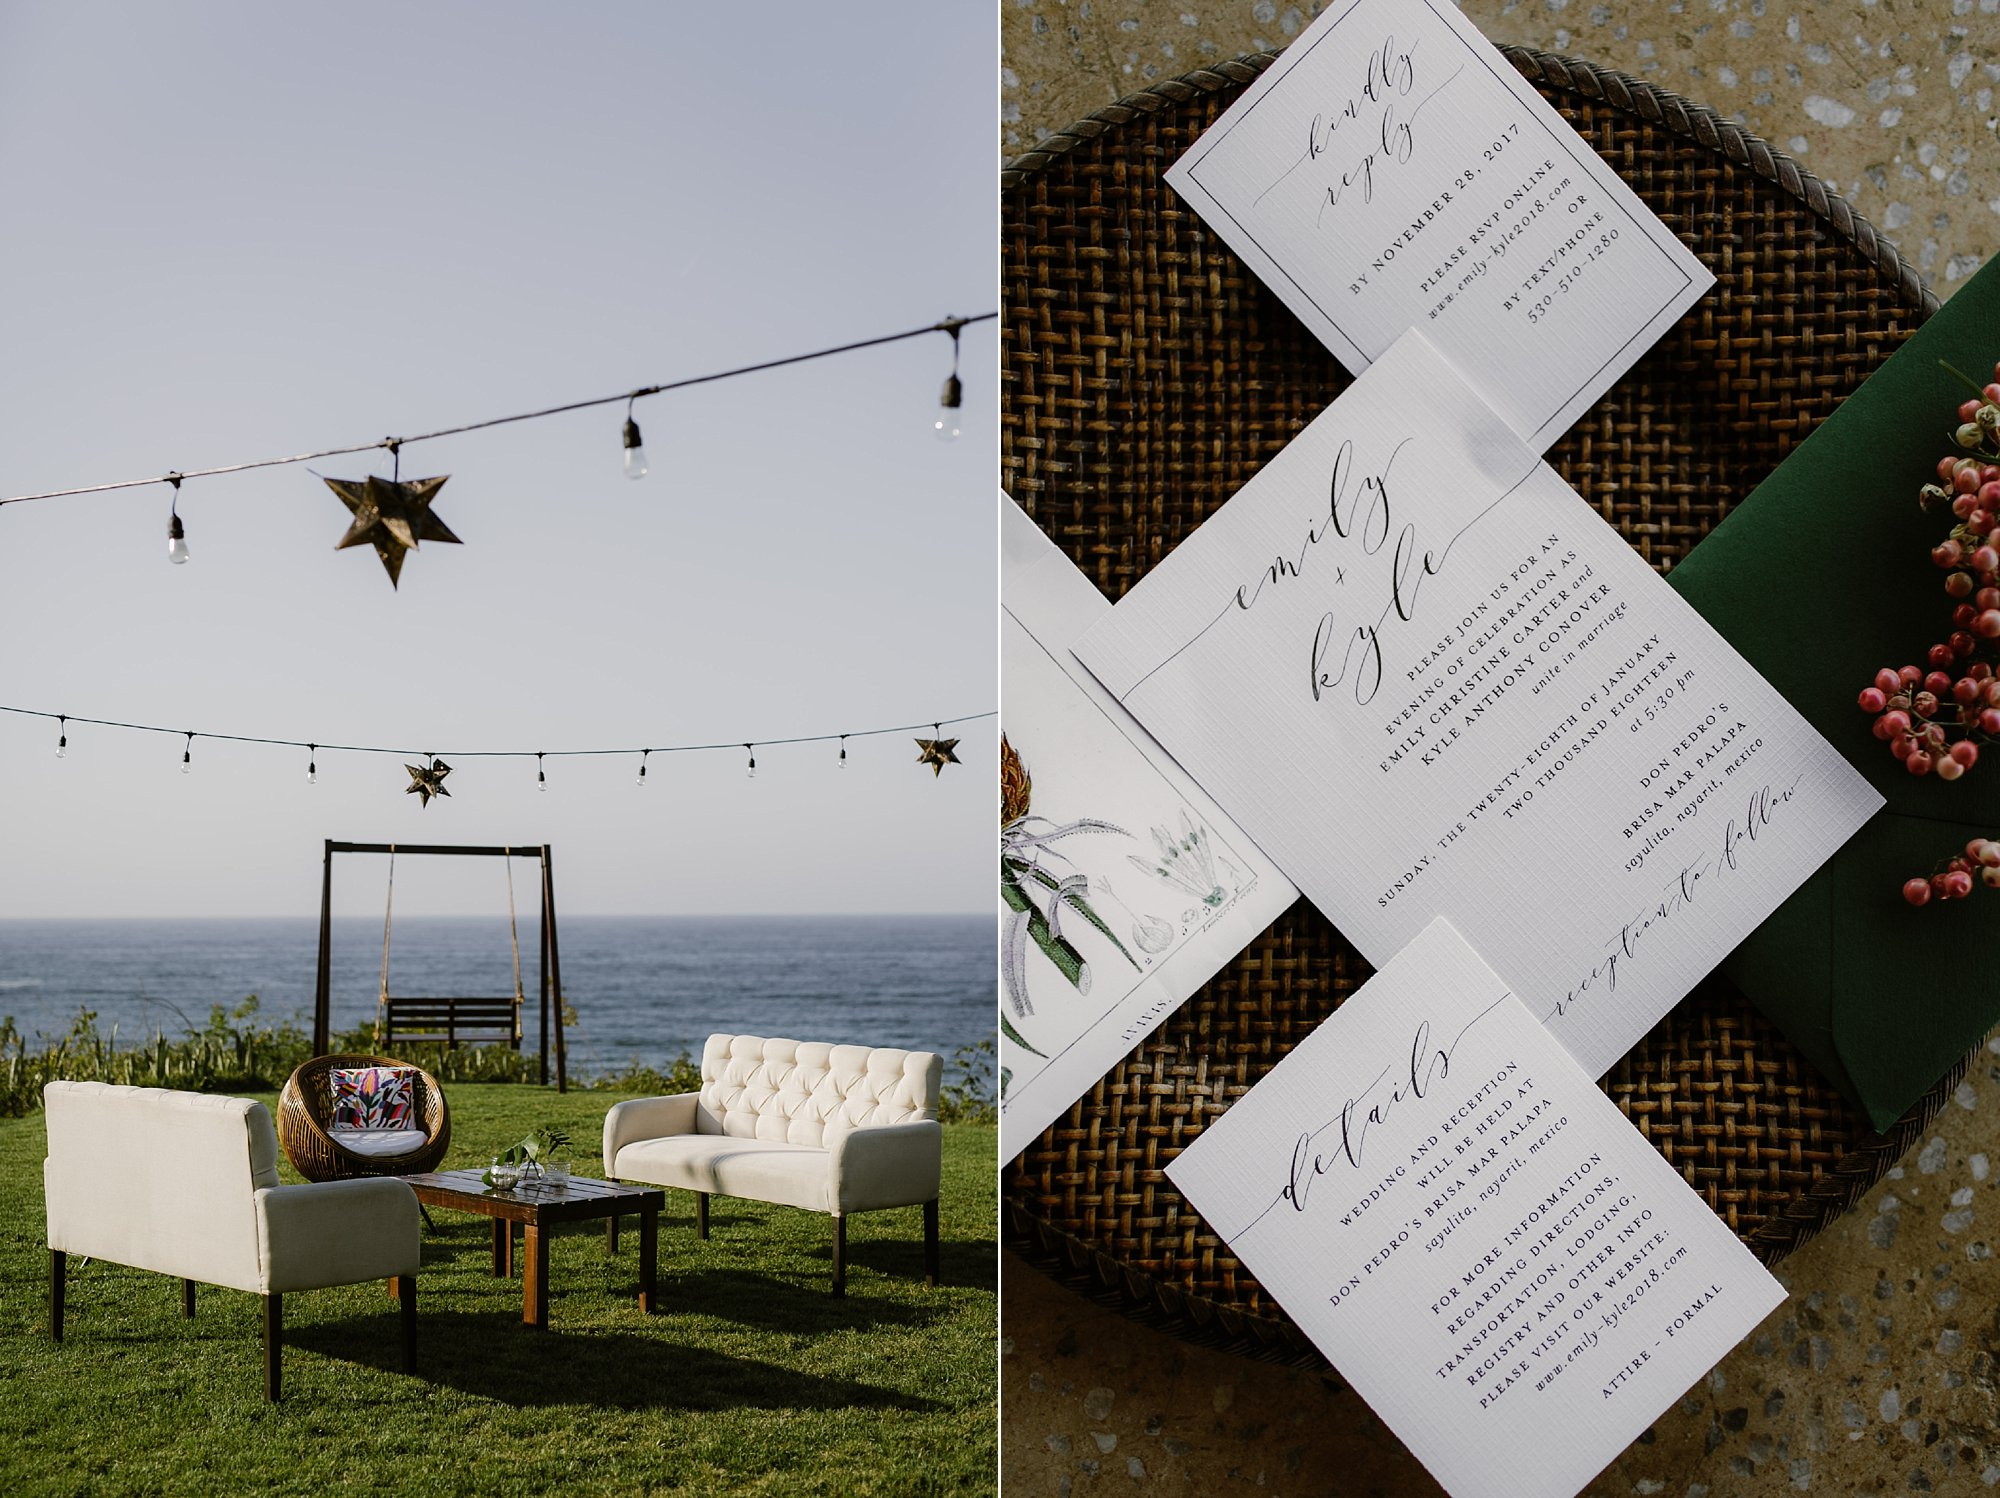 brisa-mar-palapa-sayulita-wedding-photography_0005.jpg